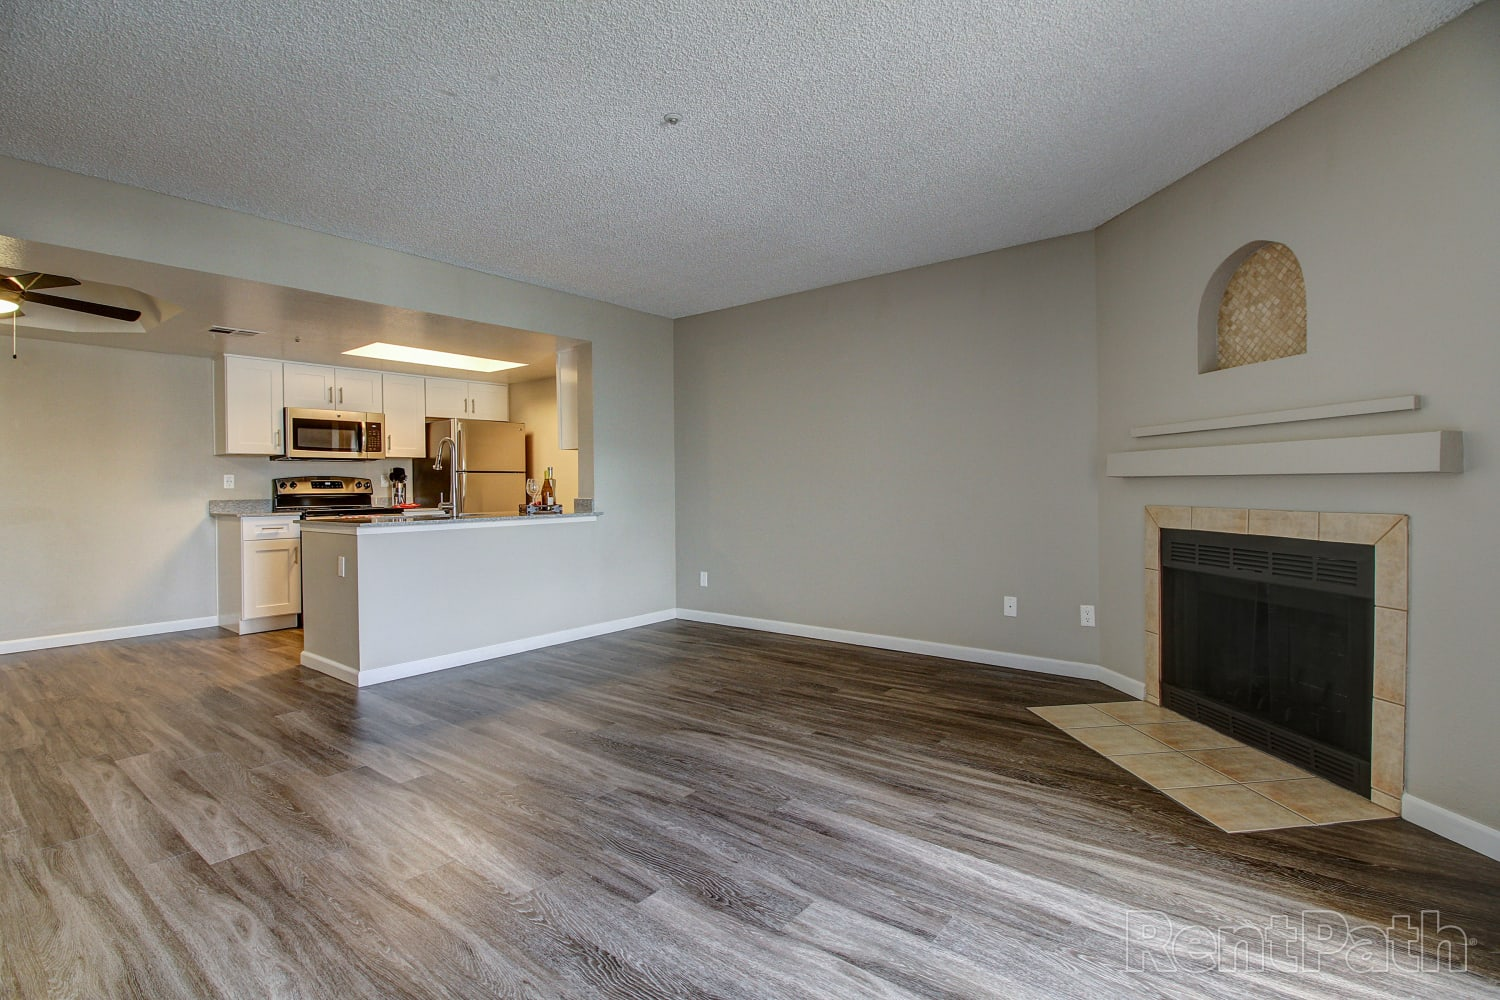 Spacious living room with a fireplace and hardwood floors at Casa Santa Fe Apartments in Scottsdale, Arizona